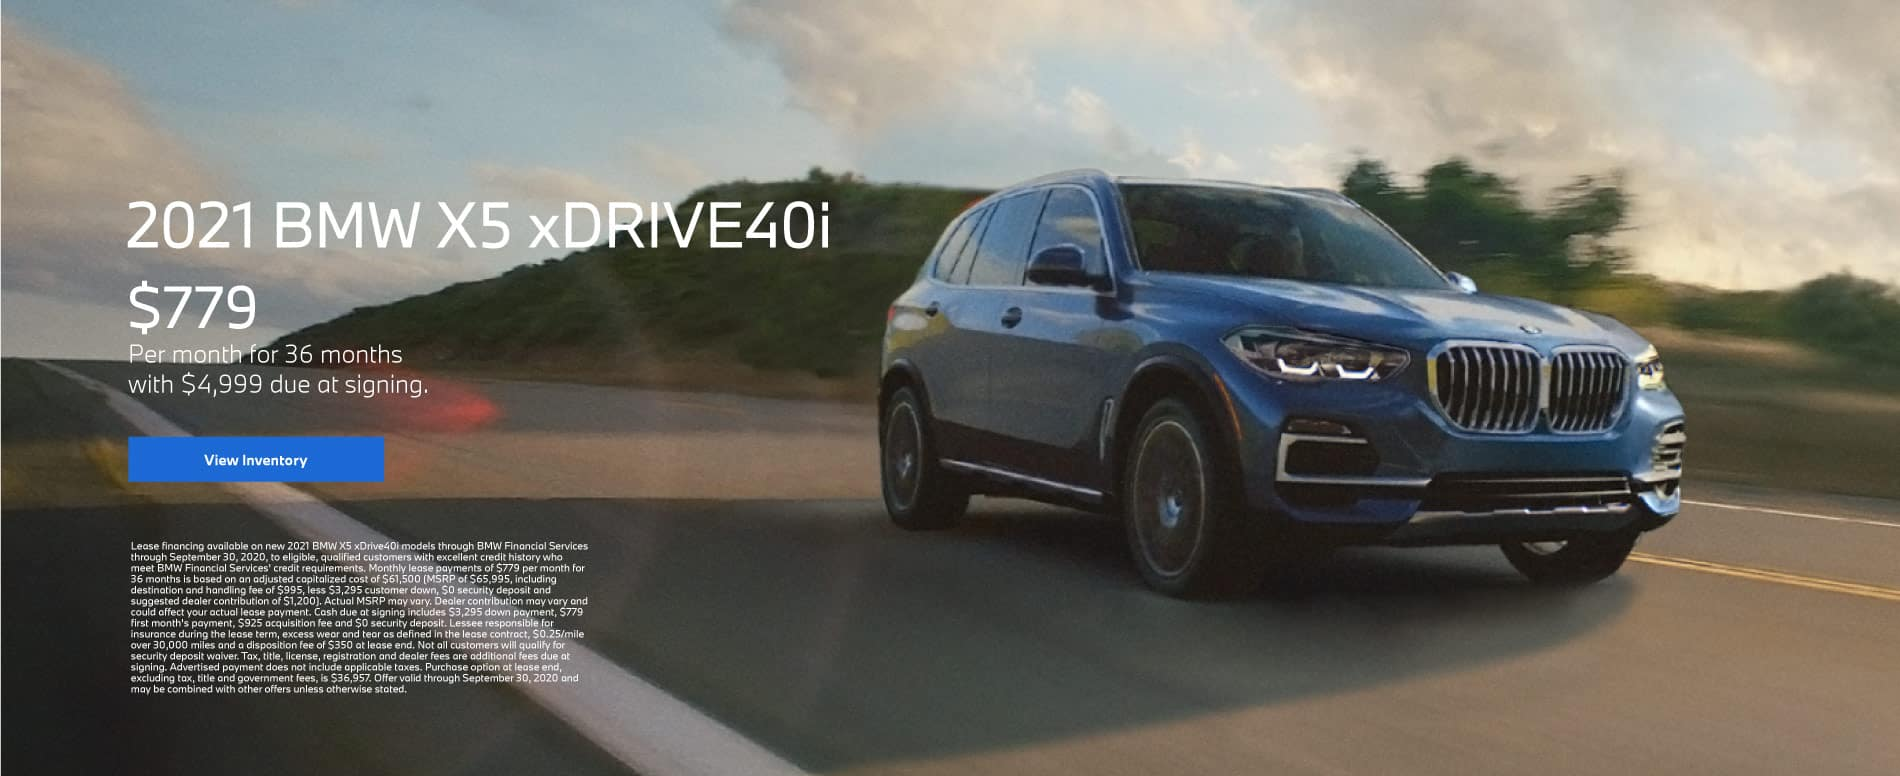 2021 BMW X5 xDRIVE40i - Lease for $779 Per Month for 36 Months - $4,999 Due At Signing. Click for offer